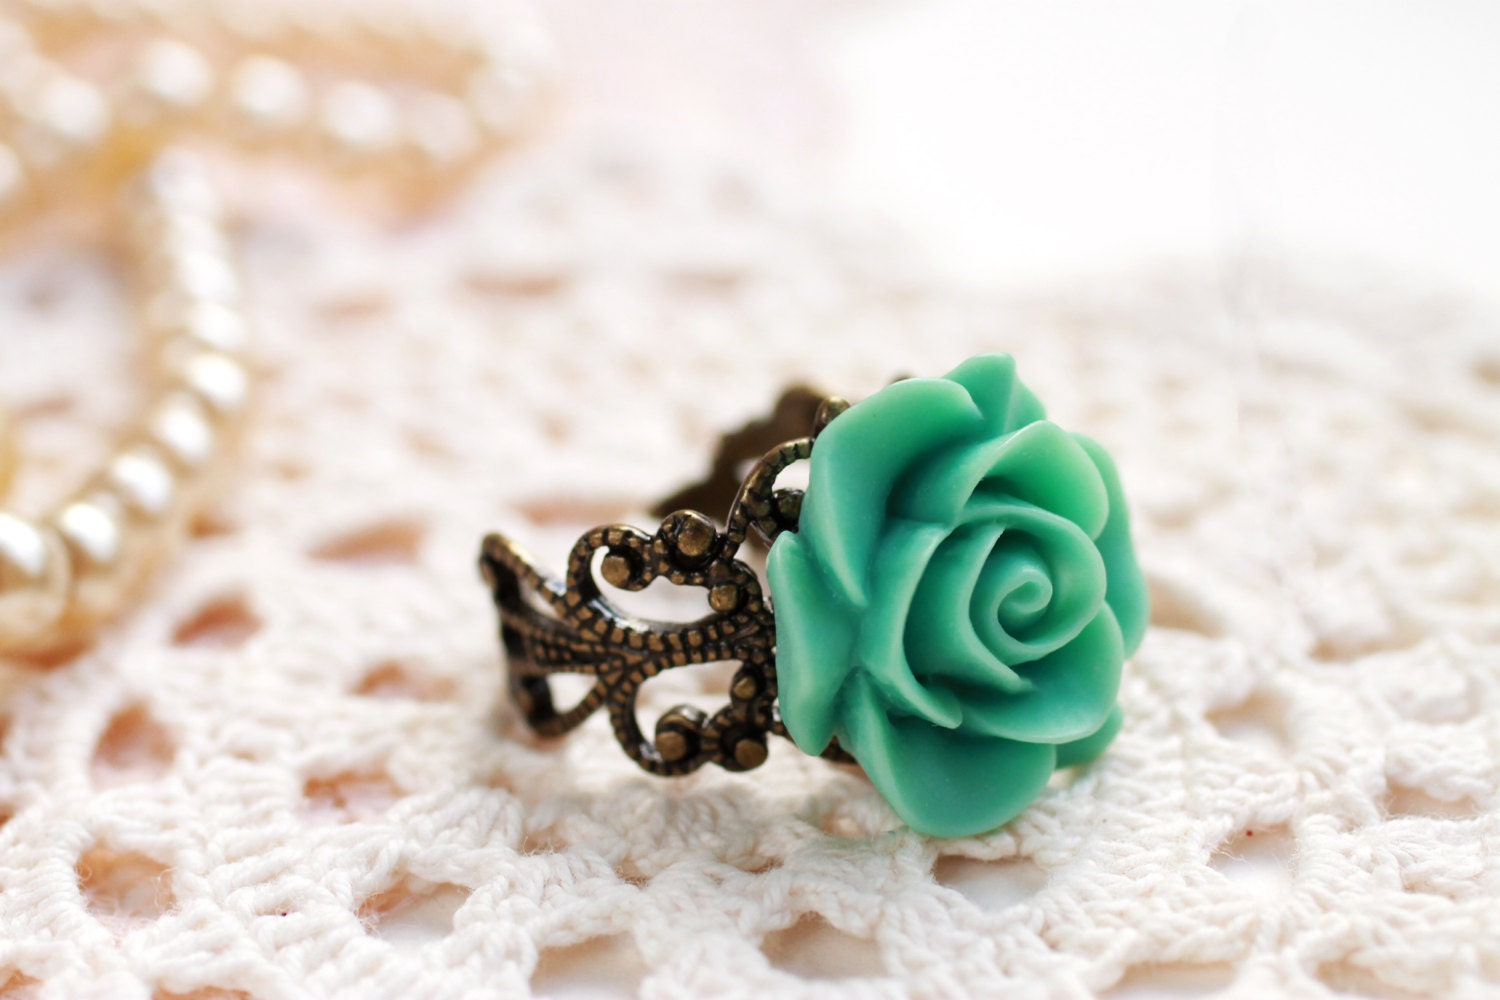 Mint green rose ring, teal rose ring, resin rose ring, resin flower ring, rose cabochon ring, etsy store , beautyfoodlfie.blogspot.com